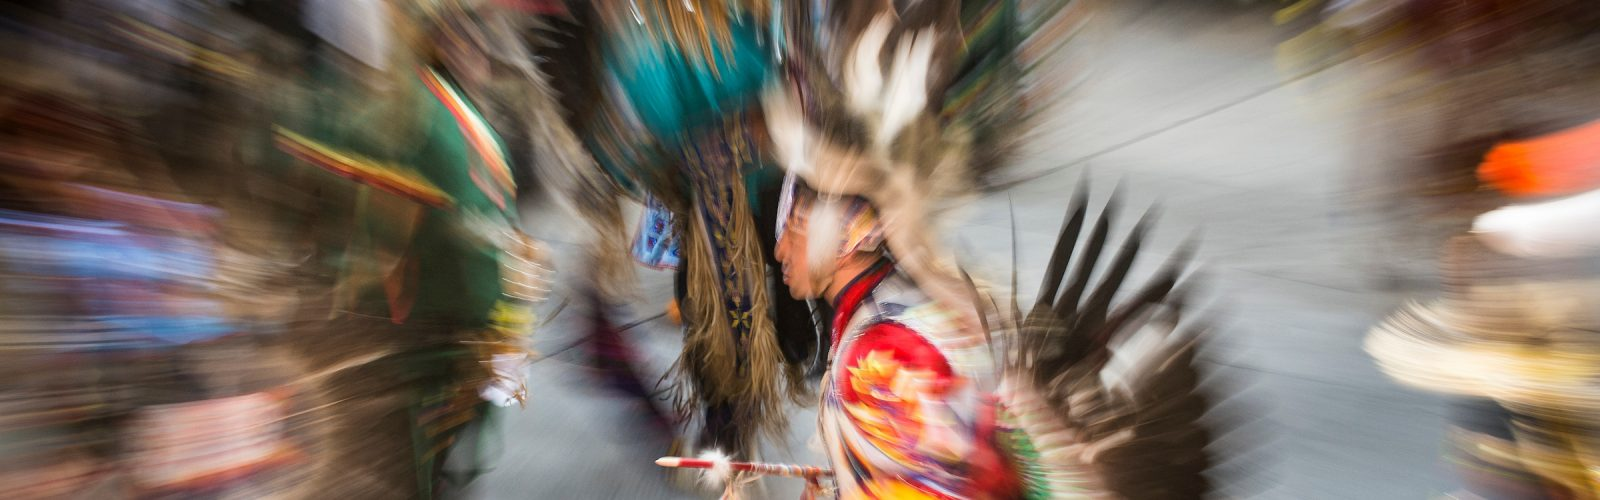 Photograph of Native American Dance Ceremony at Powwow